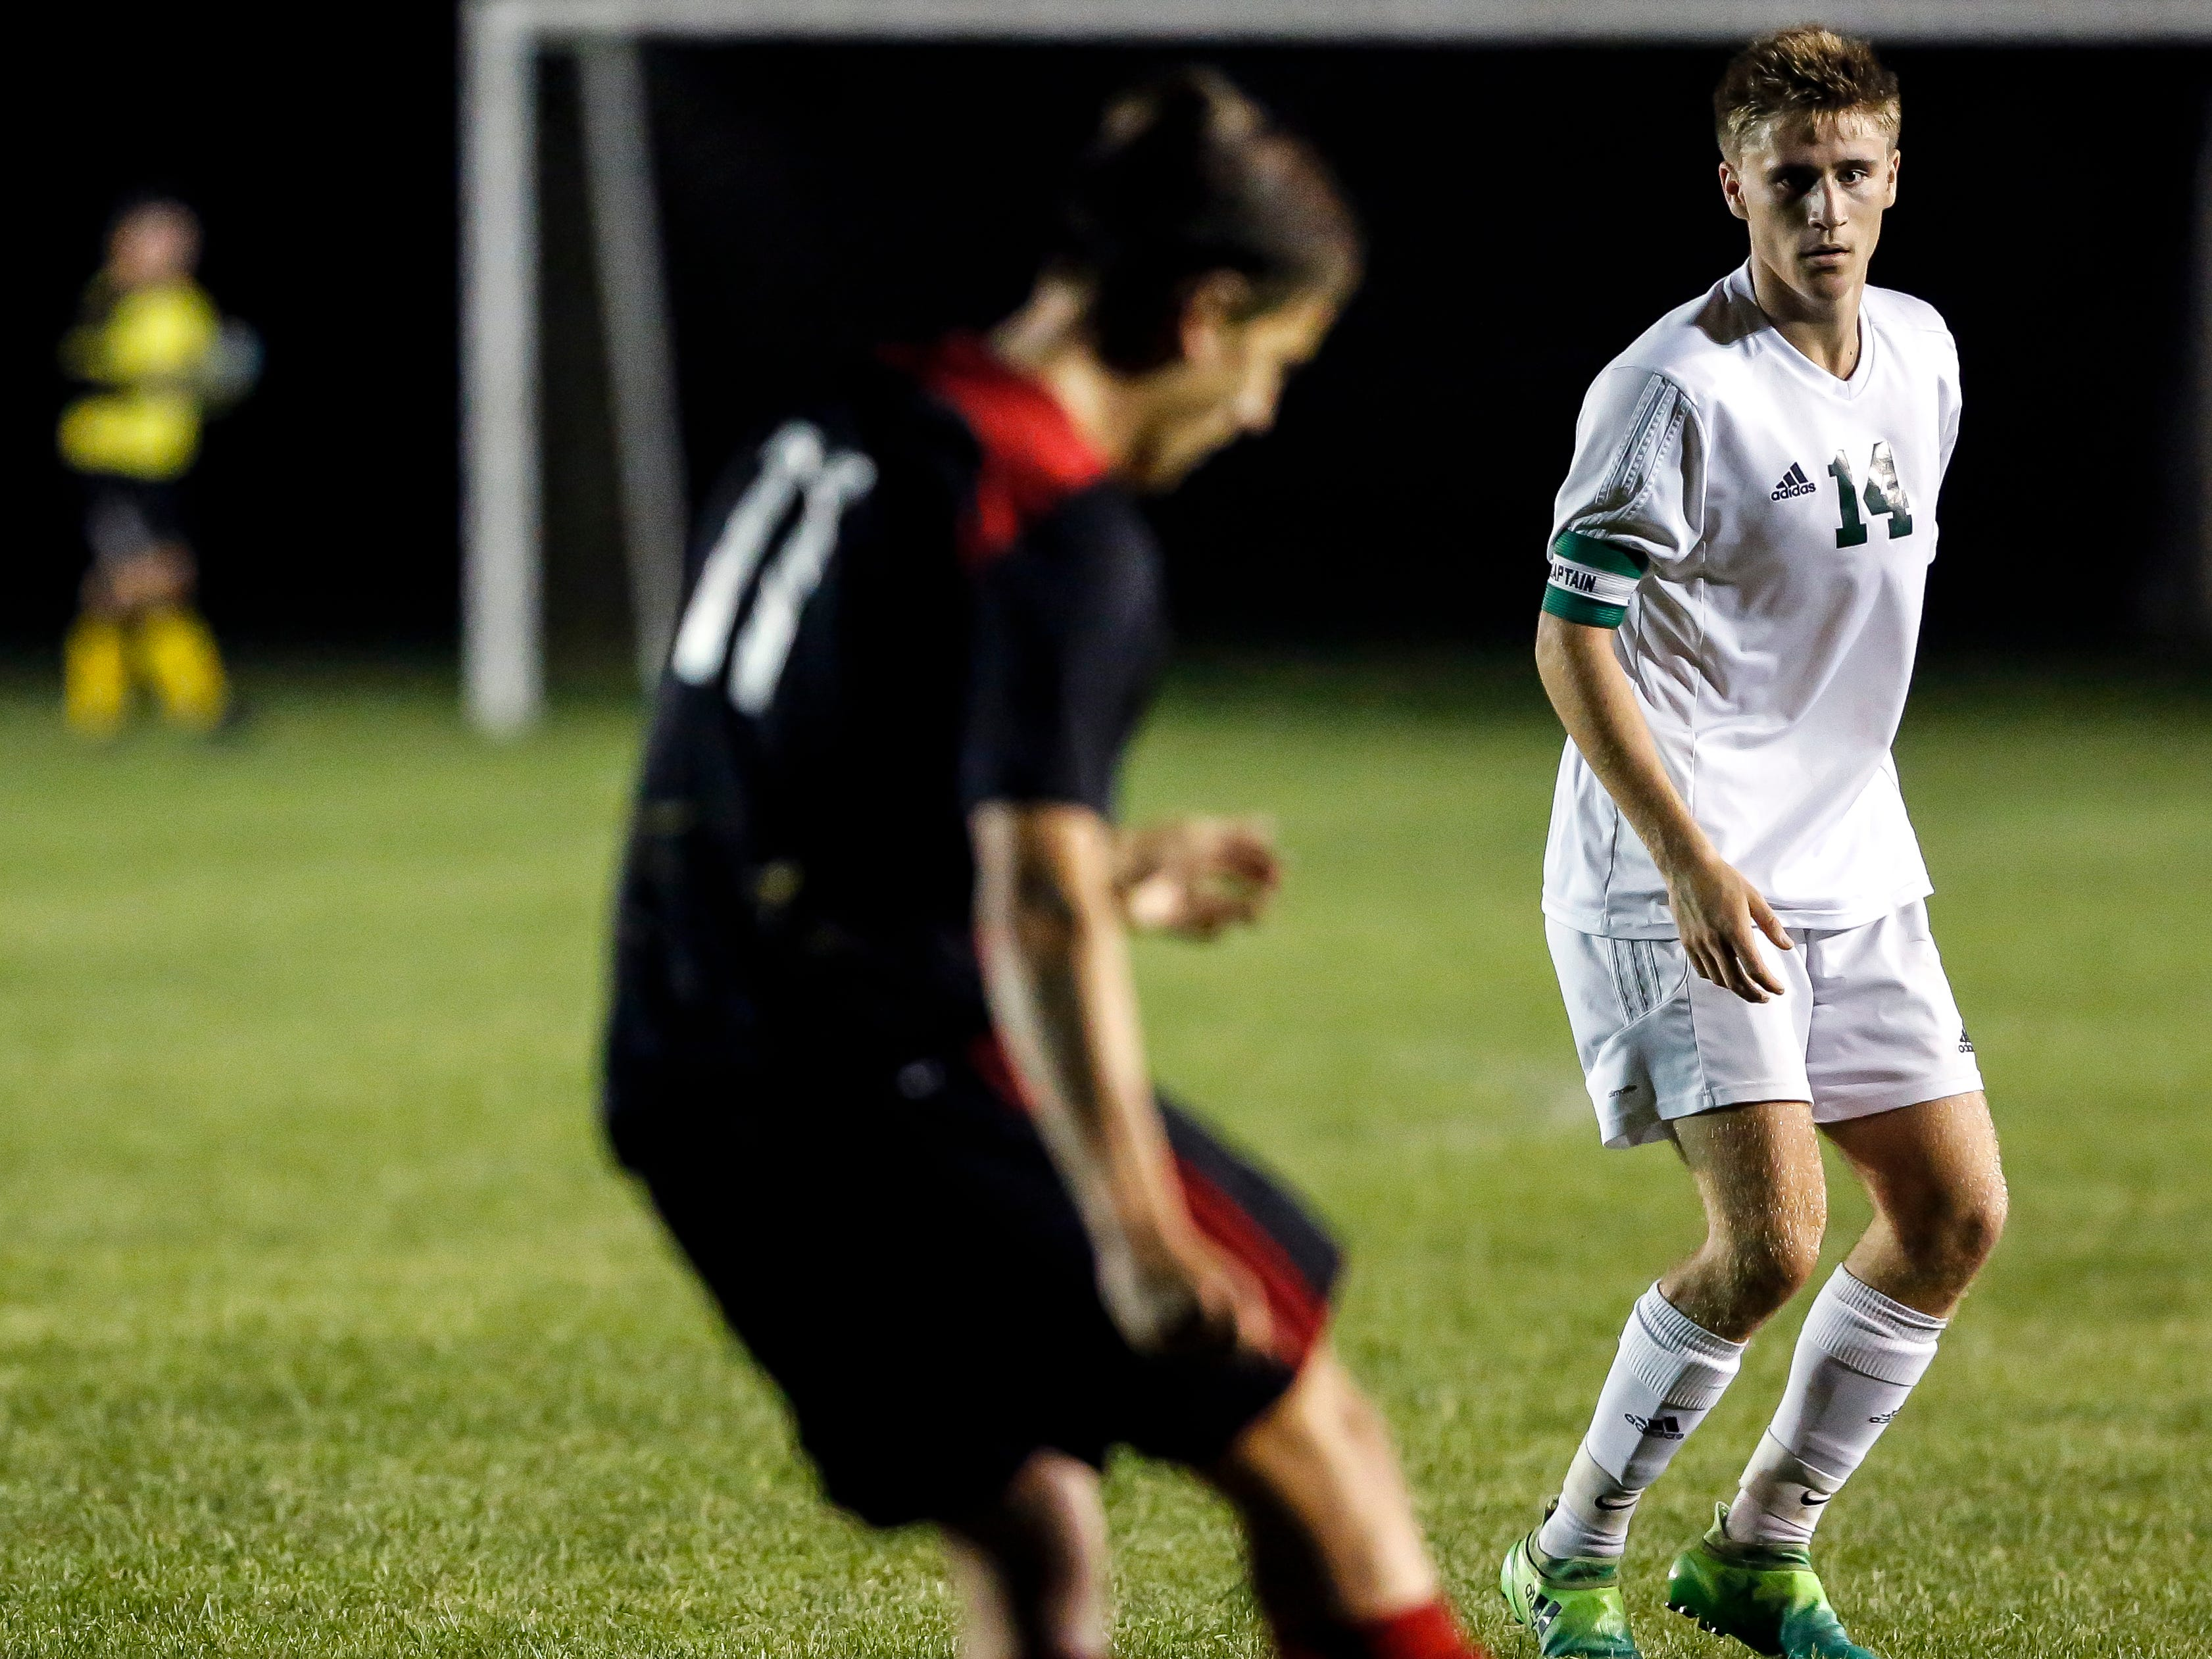 Brendan Leahy of SPASH prepares to kick the ball down the field as D.C. Everest's Ethan Stashek looks on during a soccer game between SPASH and D.C. Everest in Stevens Point, Wis., September 13, 2018.